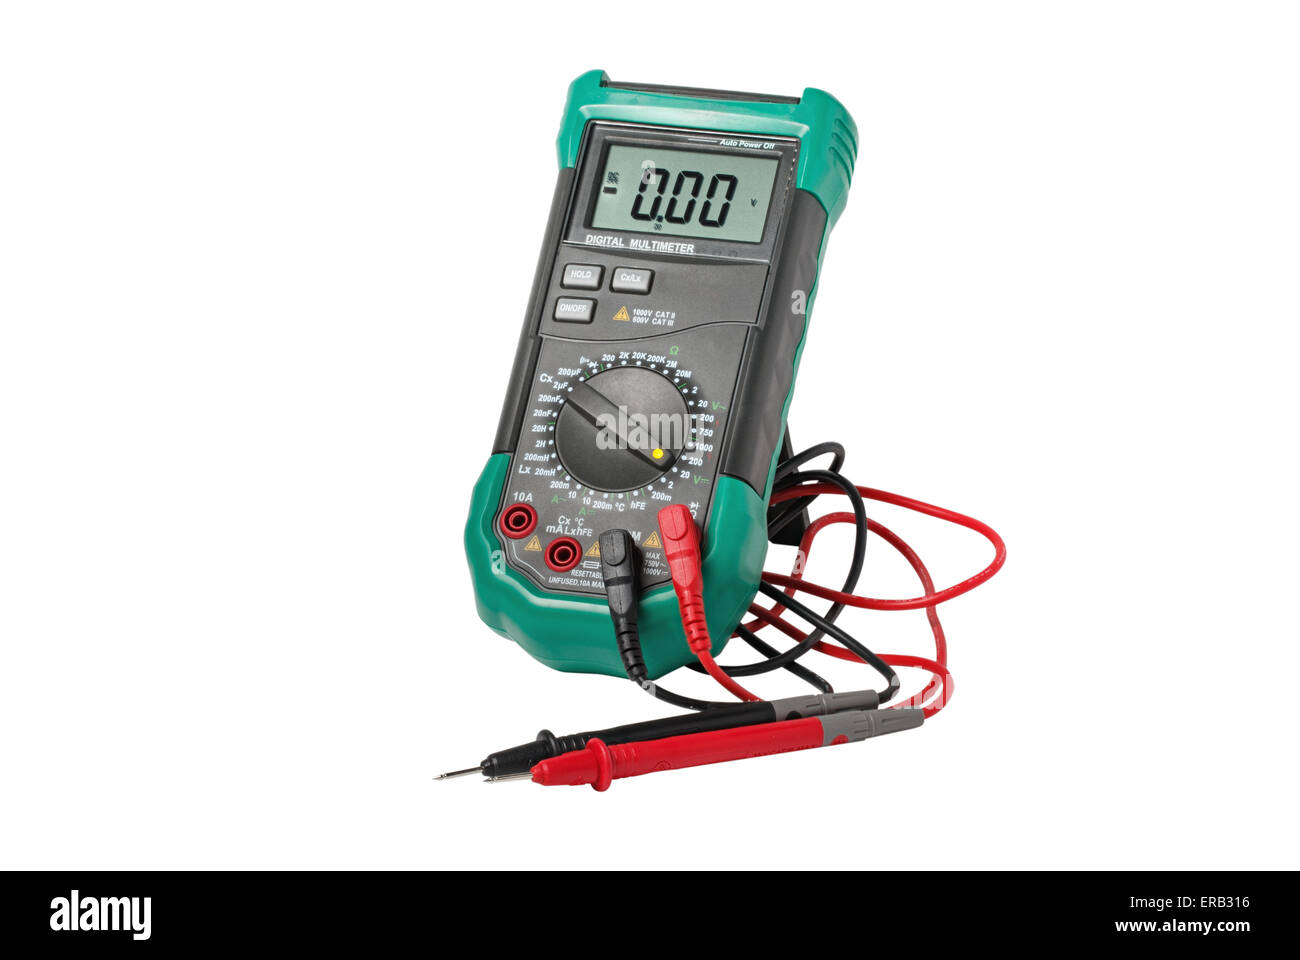 Digital multimeter with probes isolated on white - Stock Image